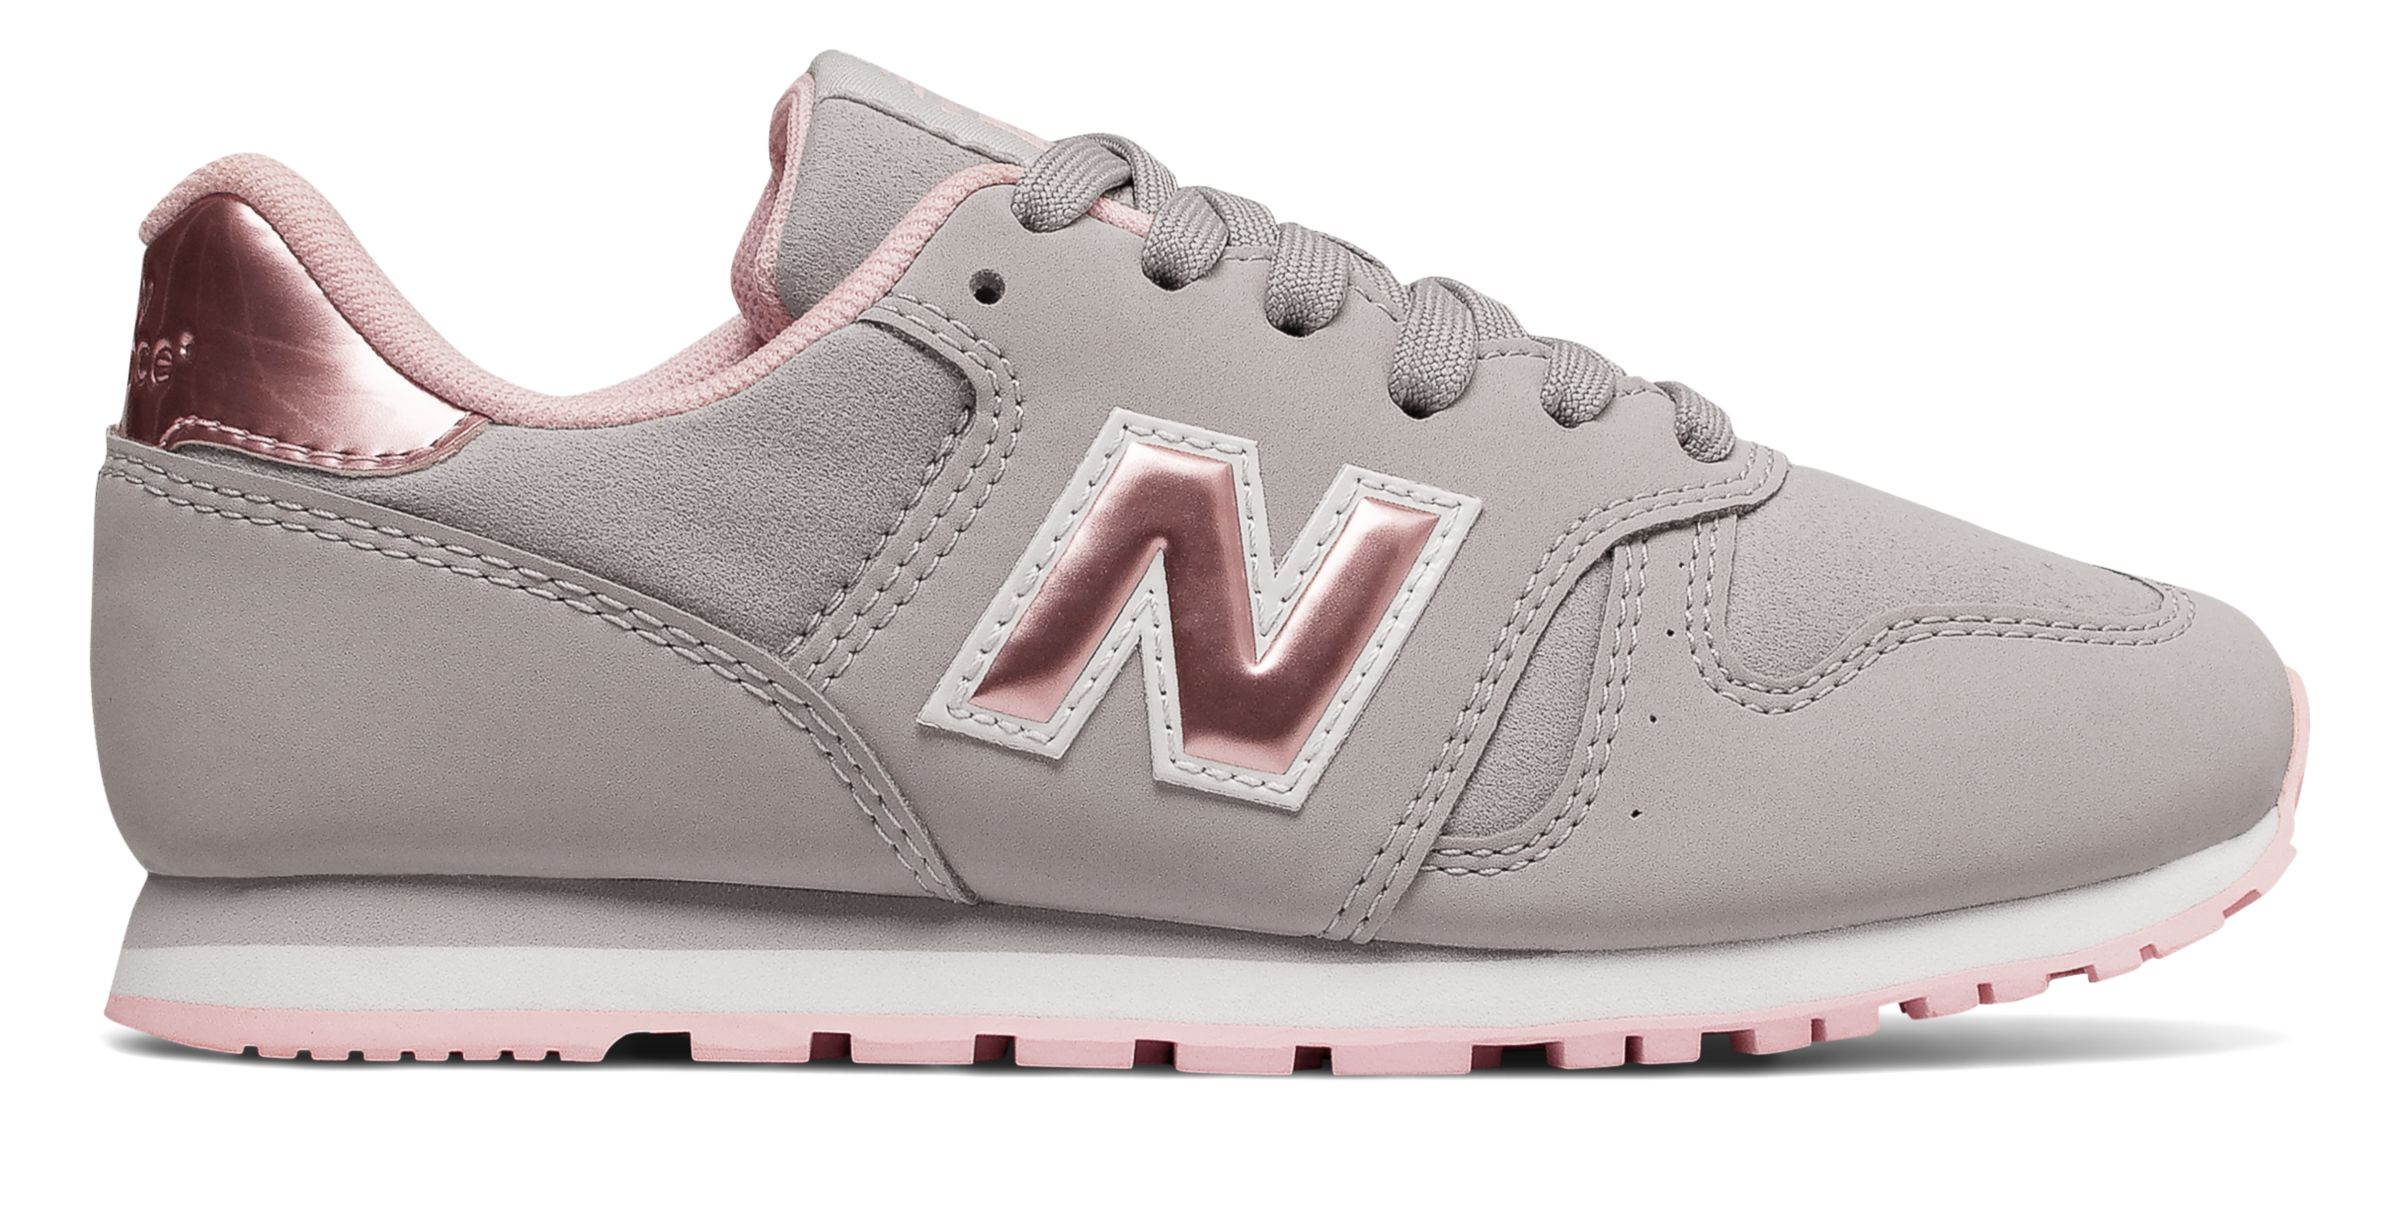 NB New Balance 373, Grey with Rose Gold